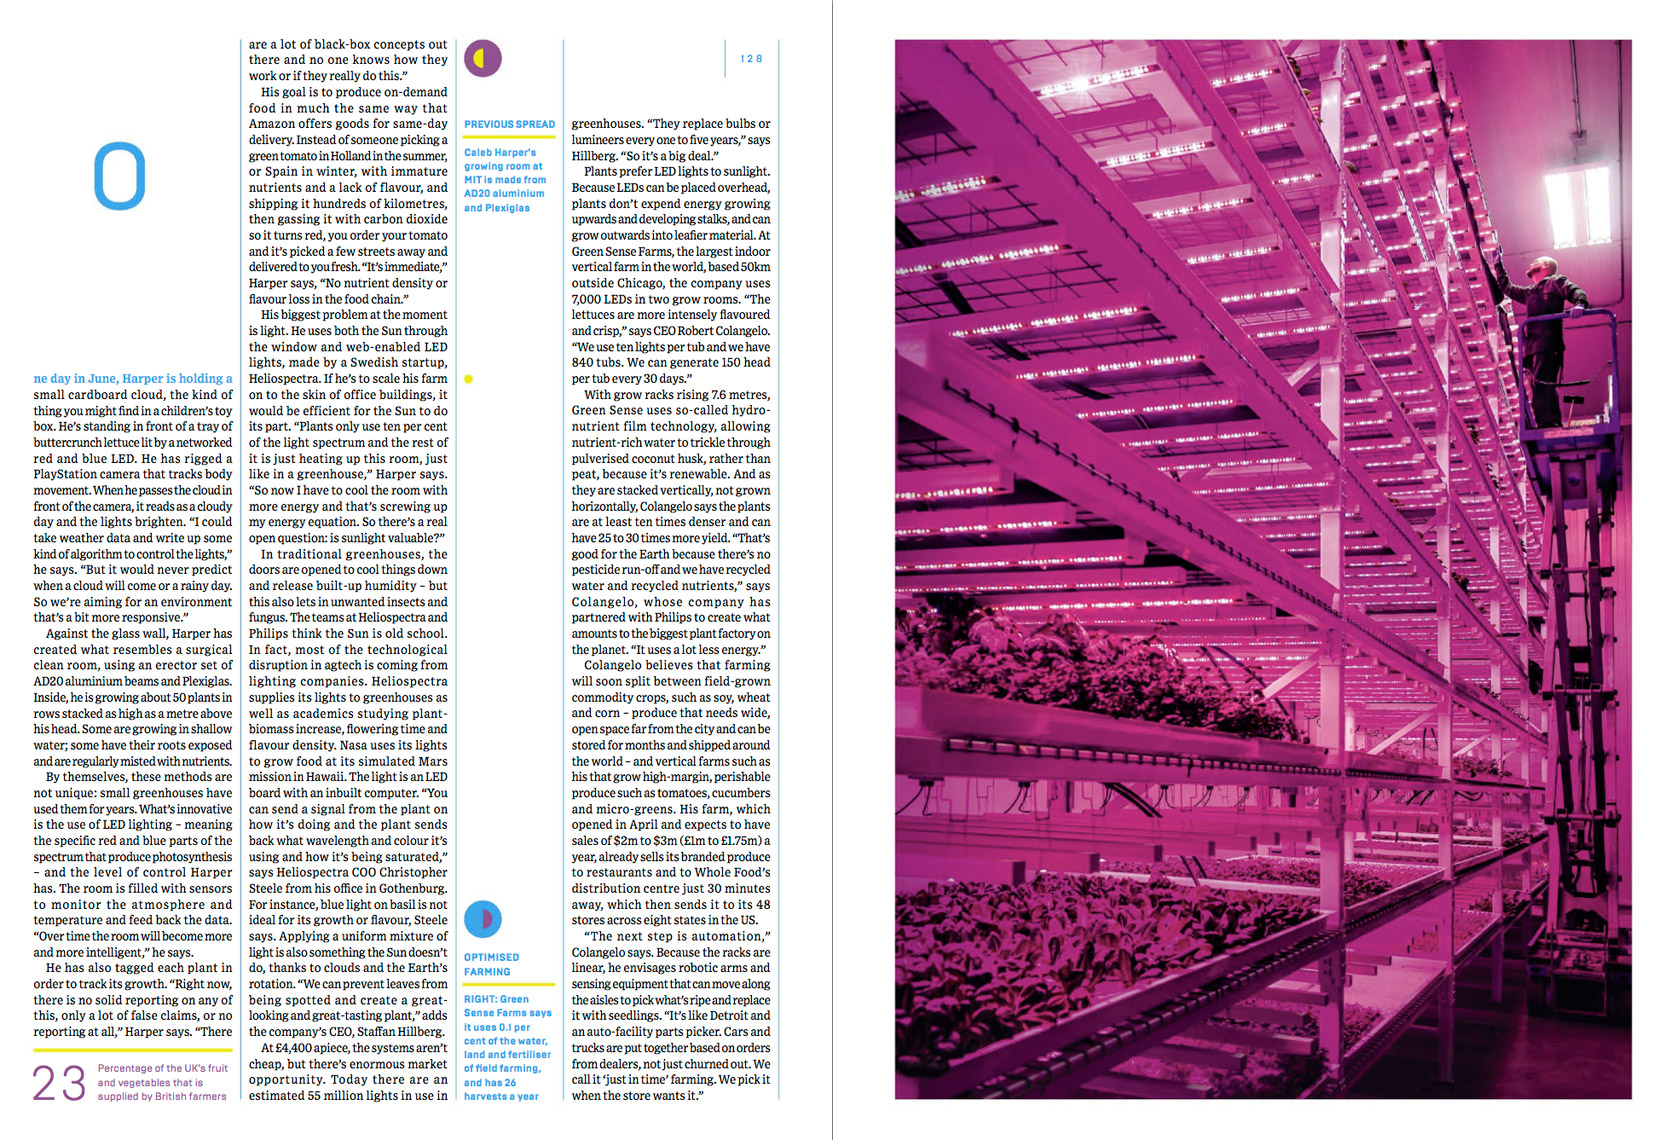 WIRED UK - OCTOBER 2014 - CITY FARM Feature - Spread 4 - photographer Chris Crisman